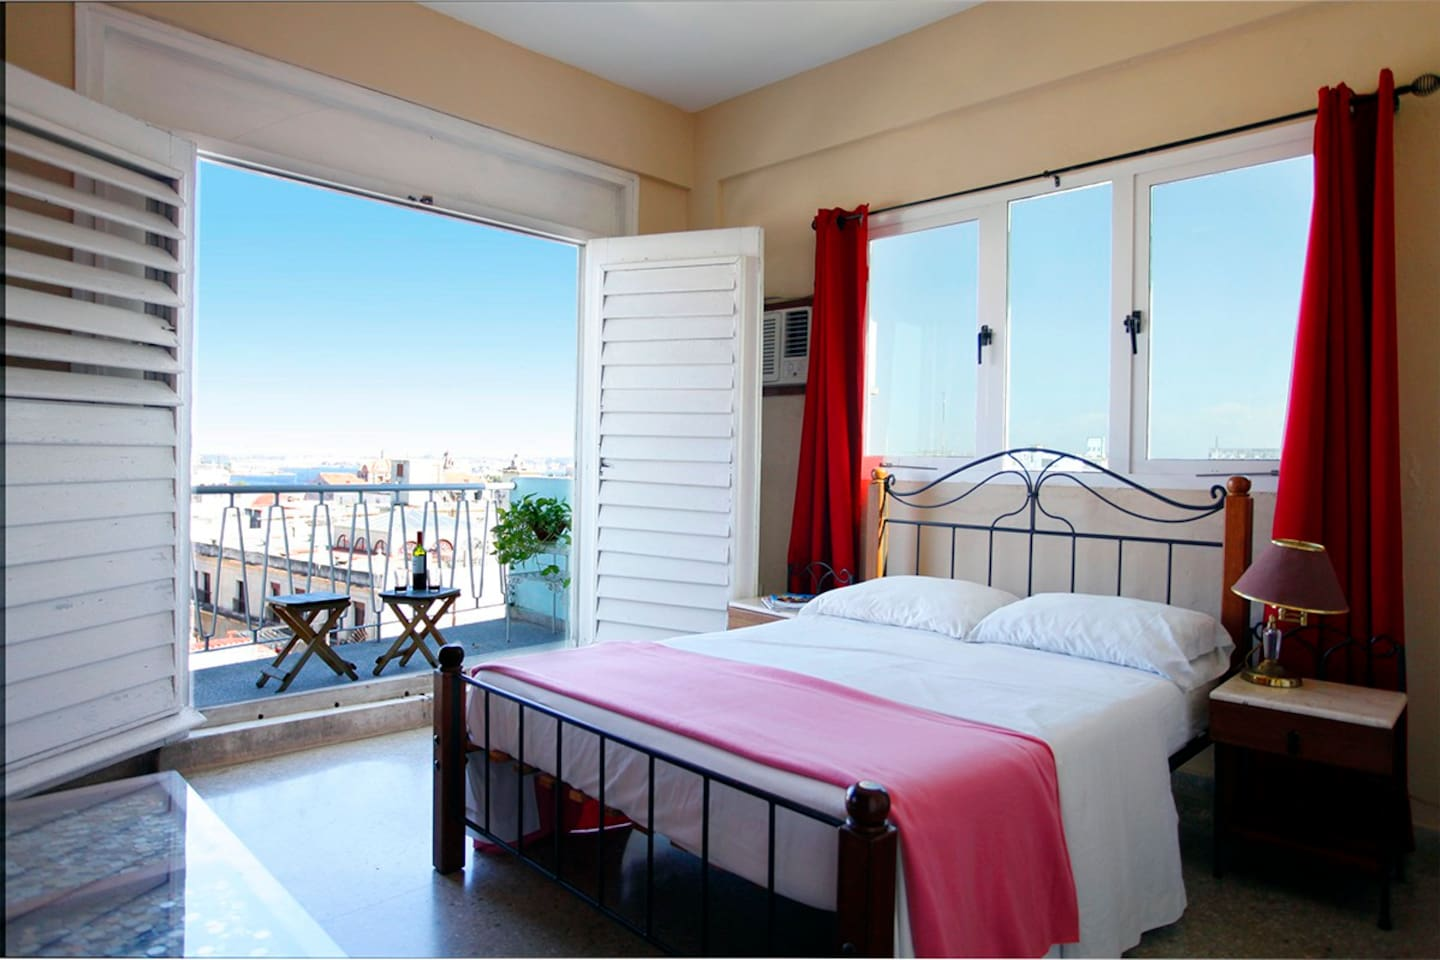 Spacious room with nice view to the bay